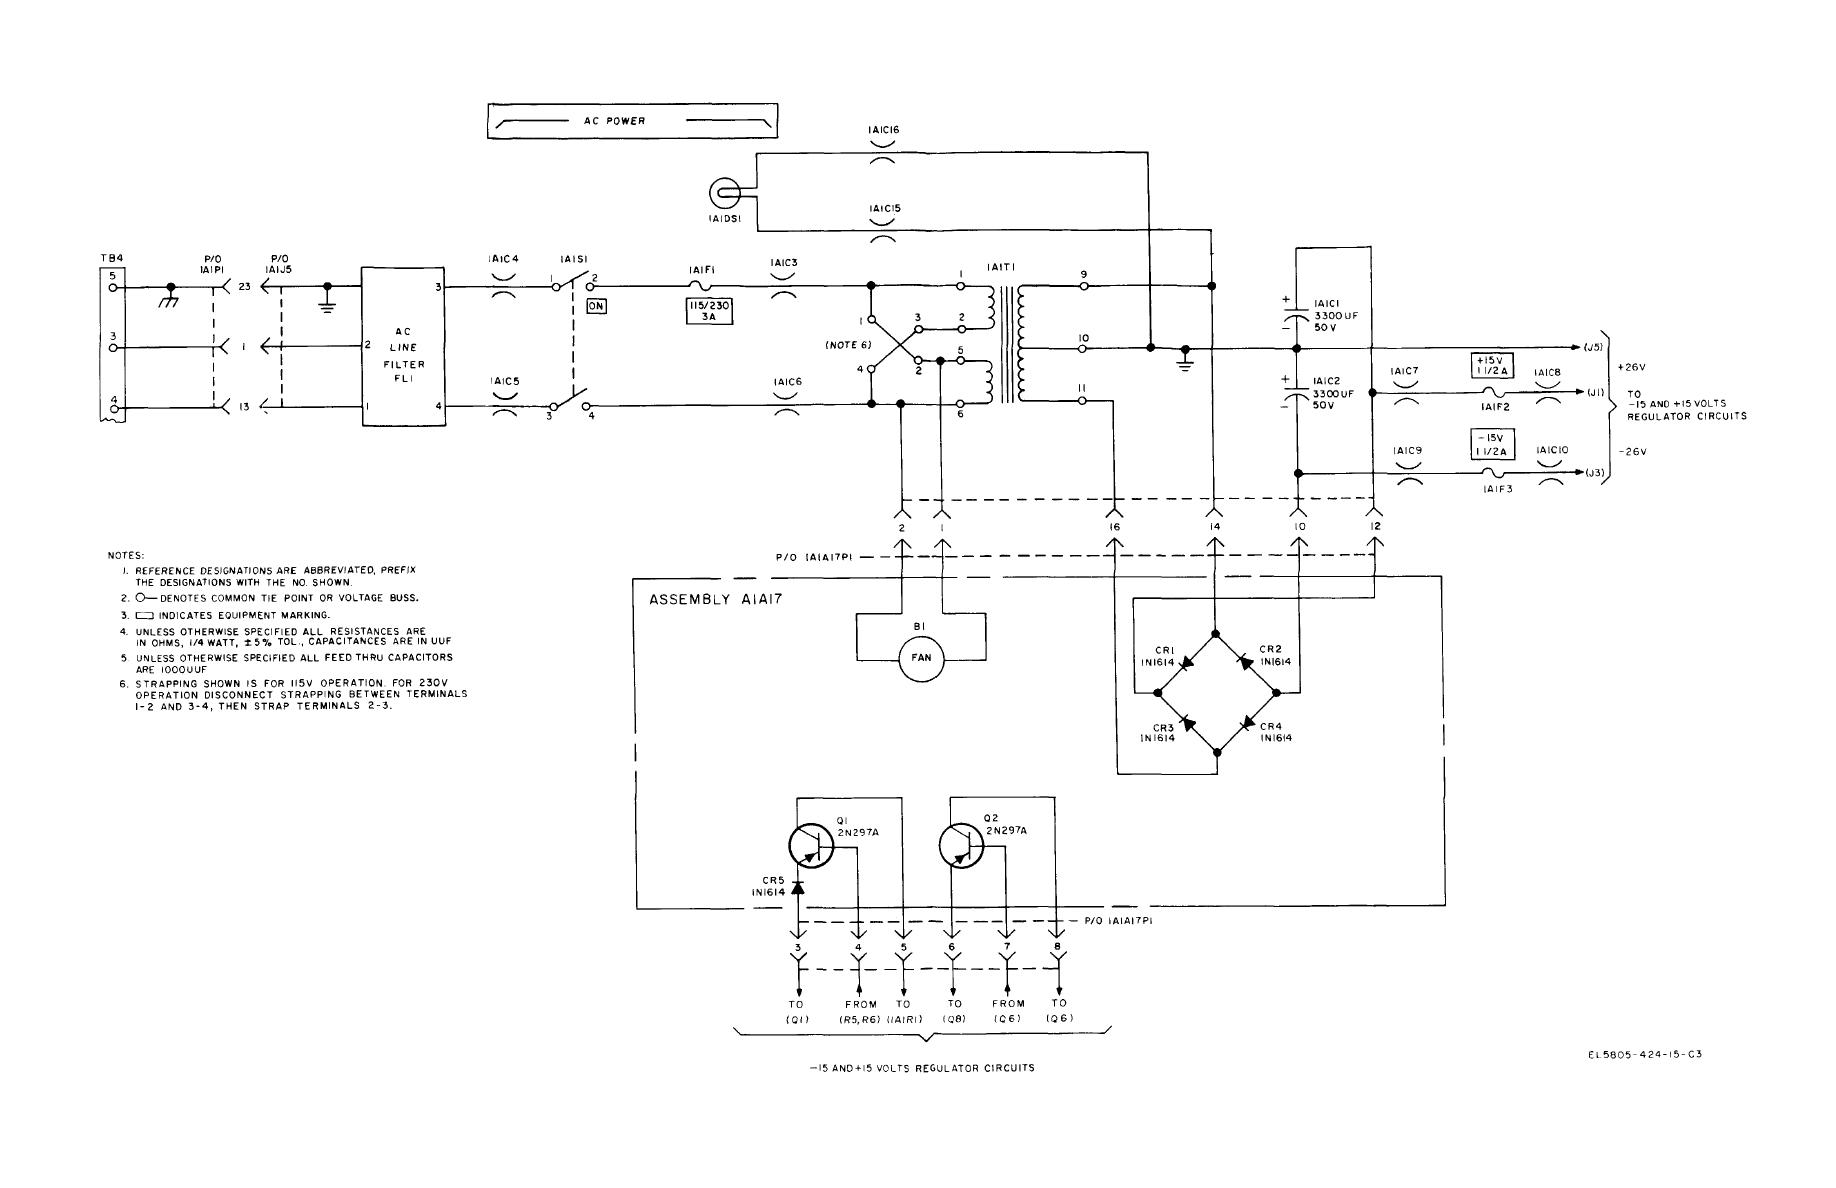 Modem Circuit Computer Circuits Figure 8 Boost Converter Diagram Ac Power And Rectifier Chassis Supply